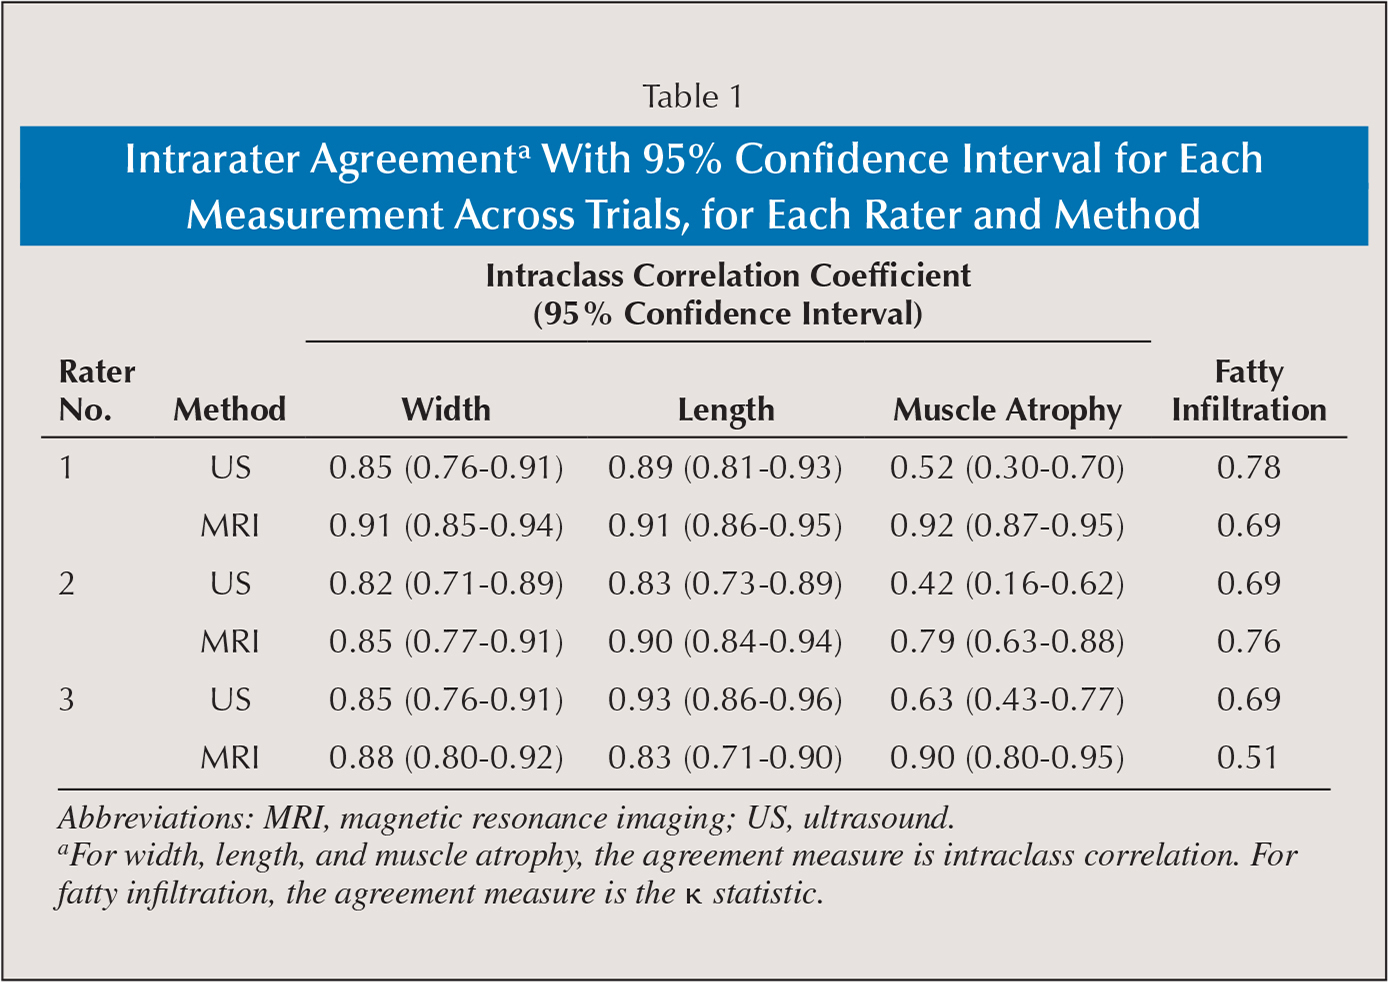 Intrarater Agreementa With 95% Confidence Interval for Each Measurement Across Trials, for Each Rater and Method